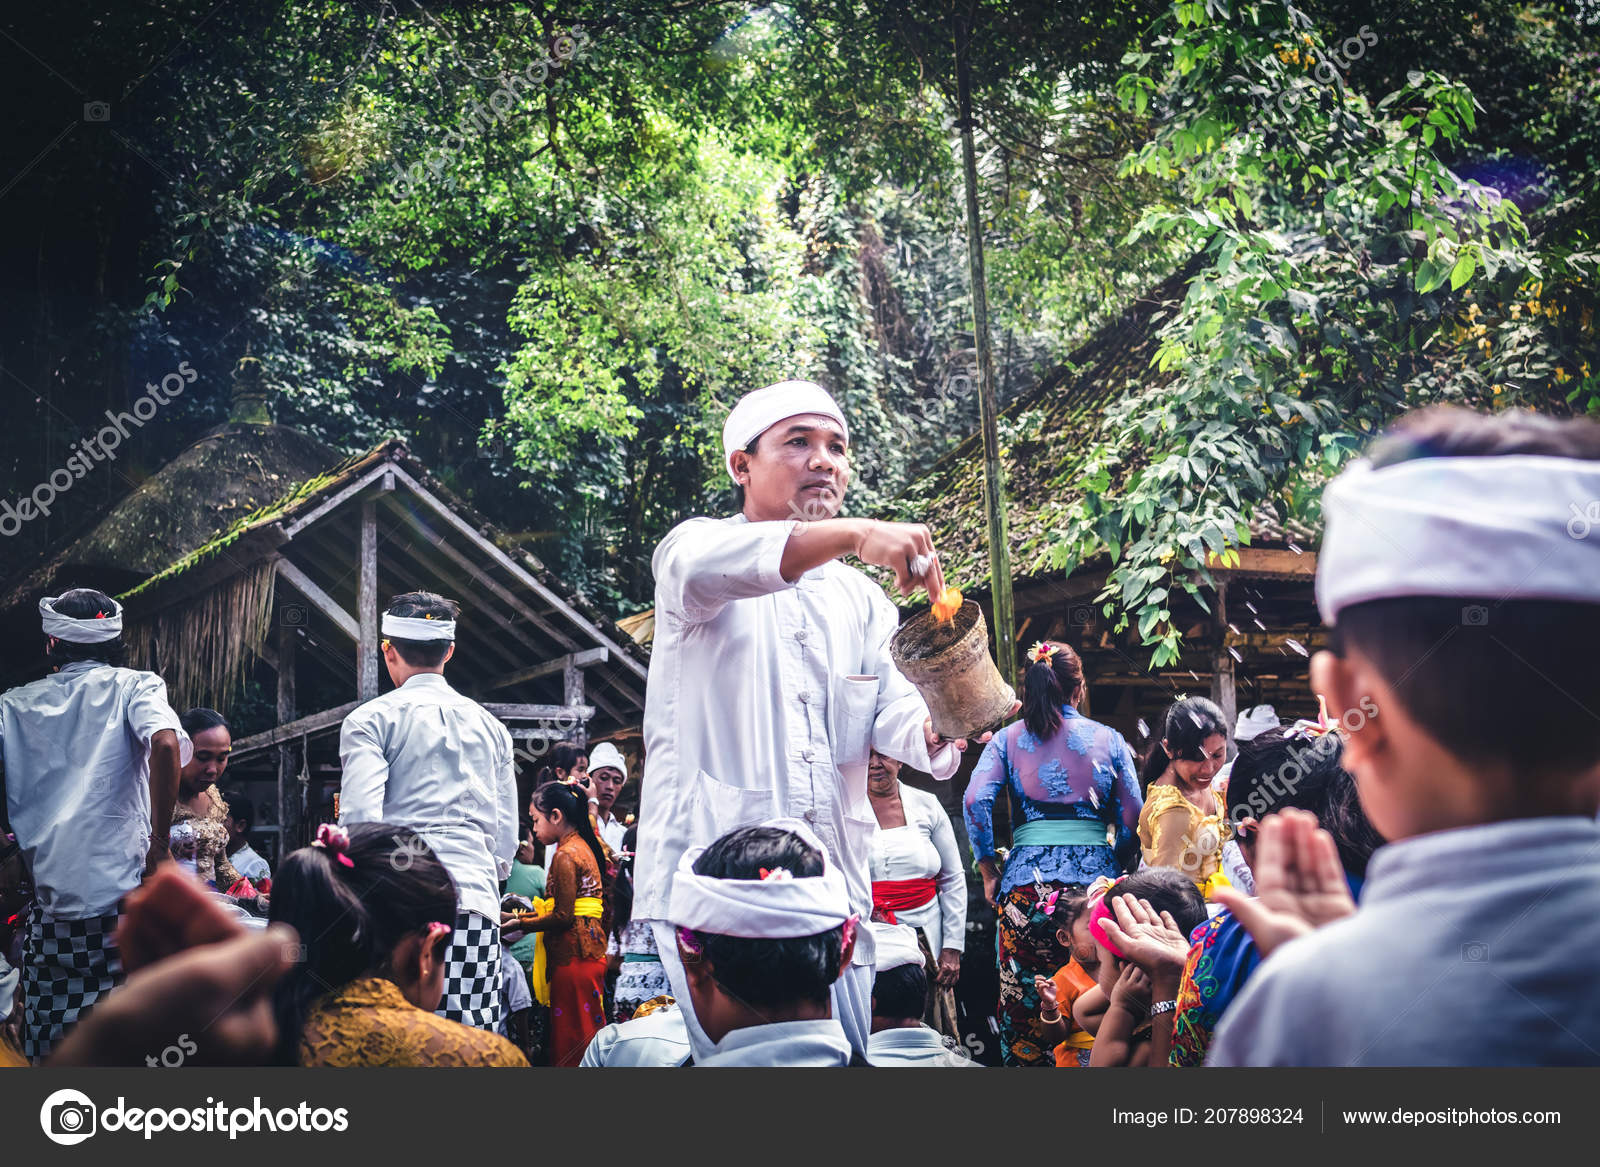 Bali Indonesia July 4 2018 Group Of People On A